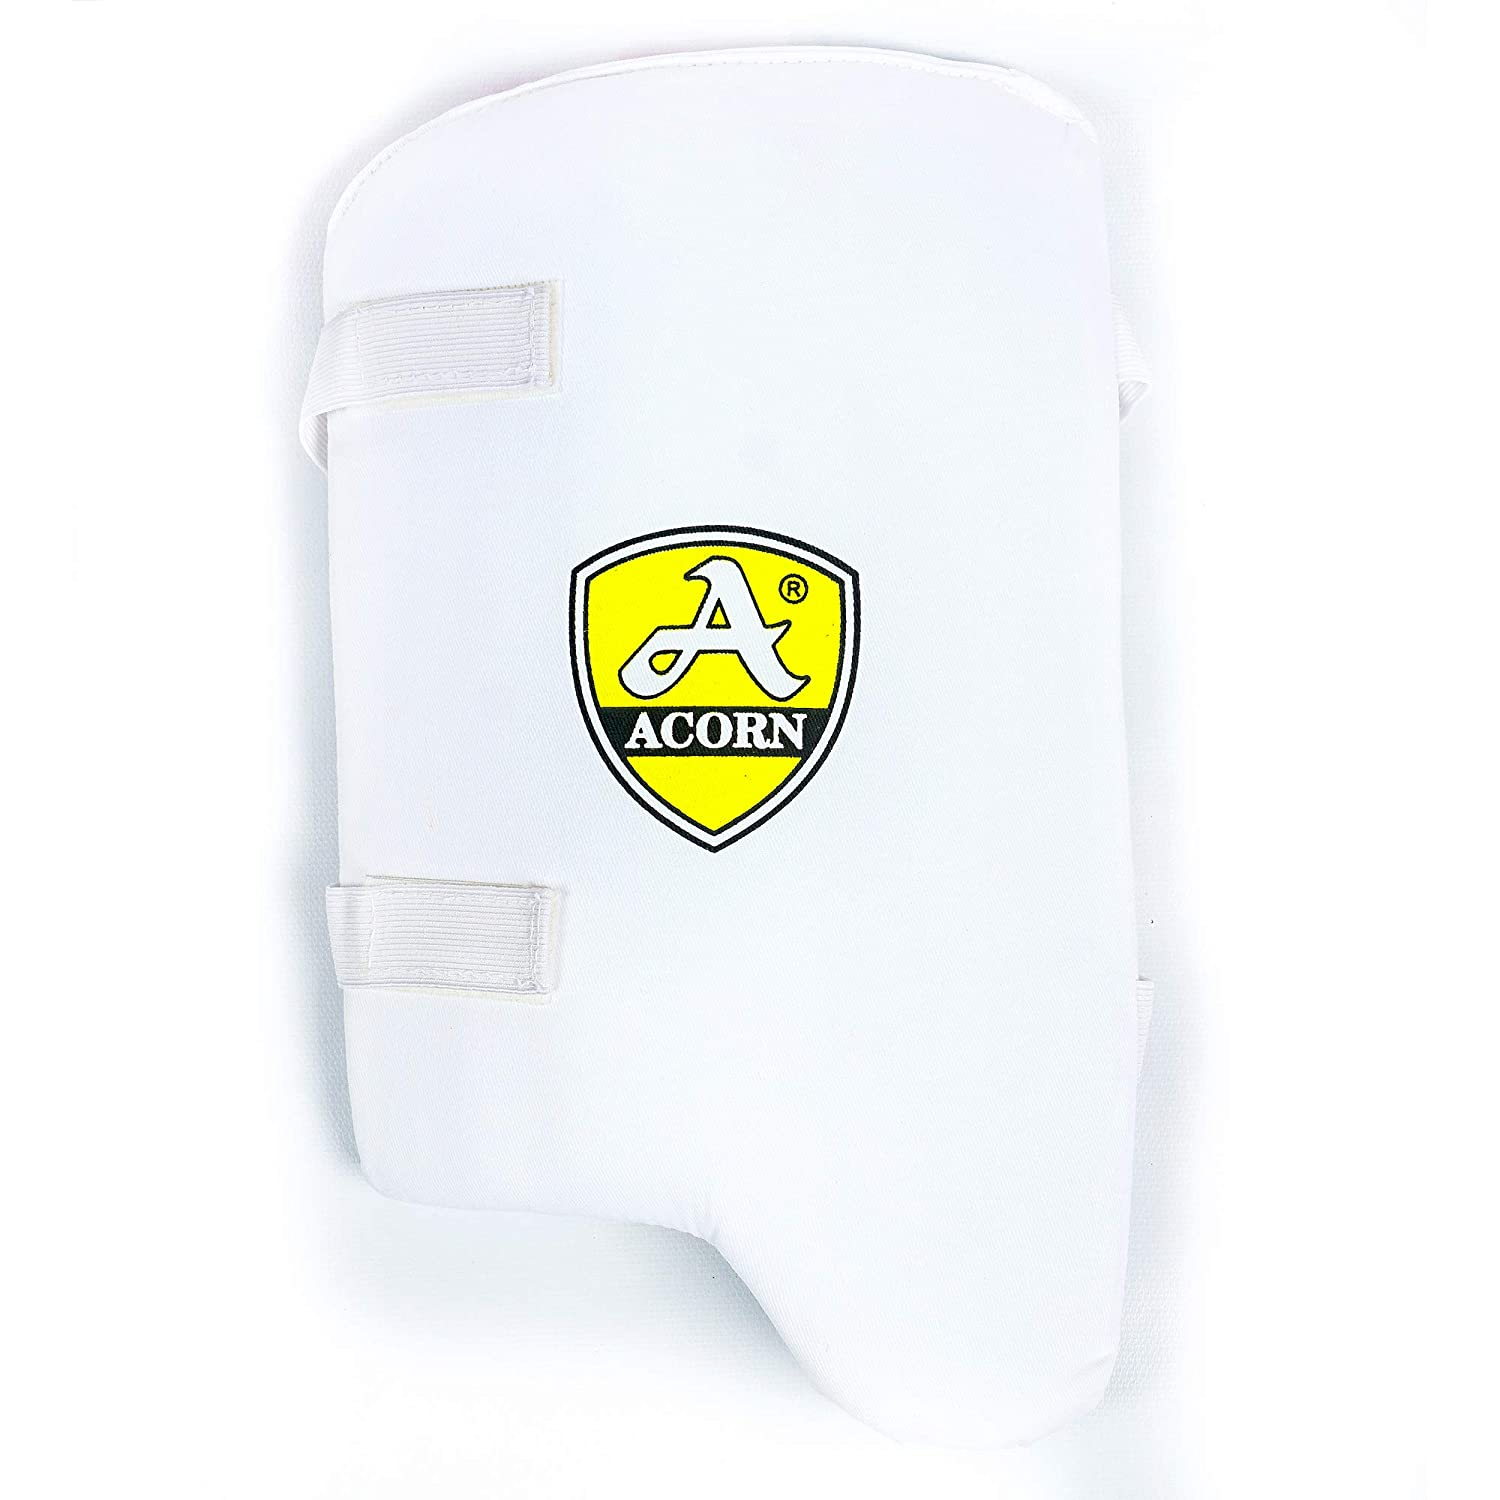 Thigh Guard (Top Quality) - Comfortable (Thigh Form)